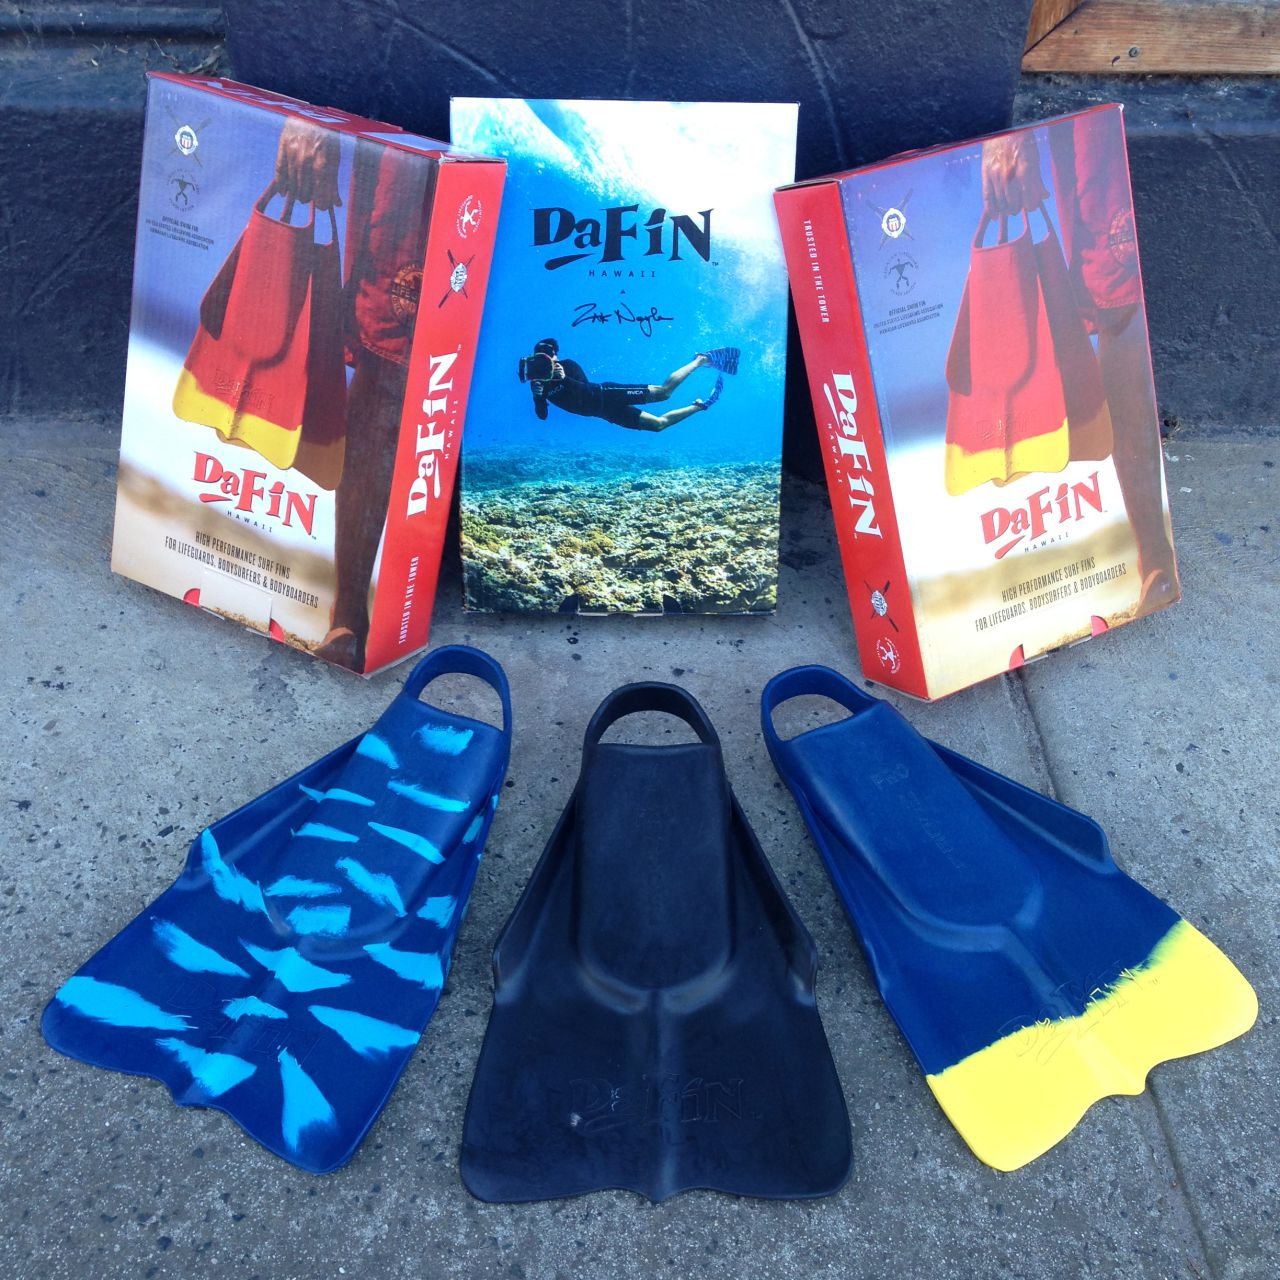 DaFin Swim Fins are back in store